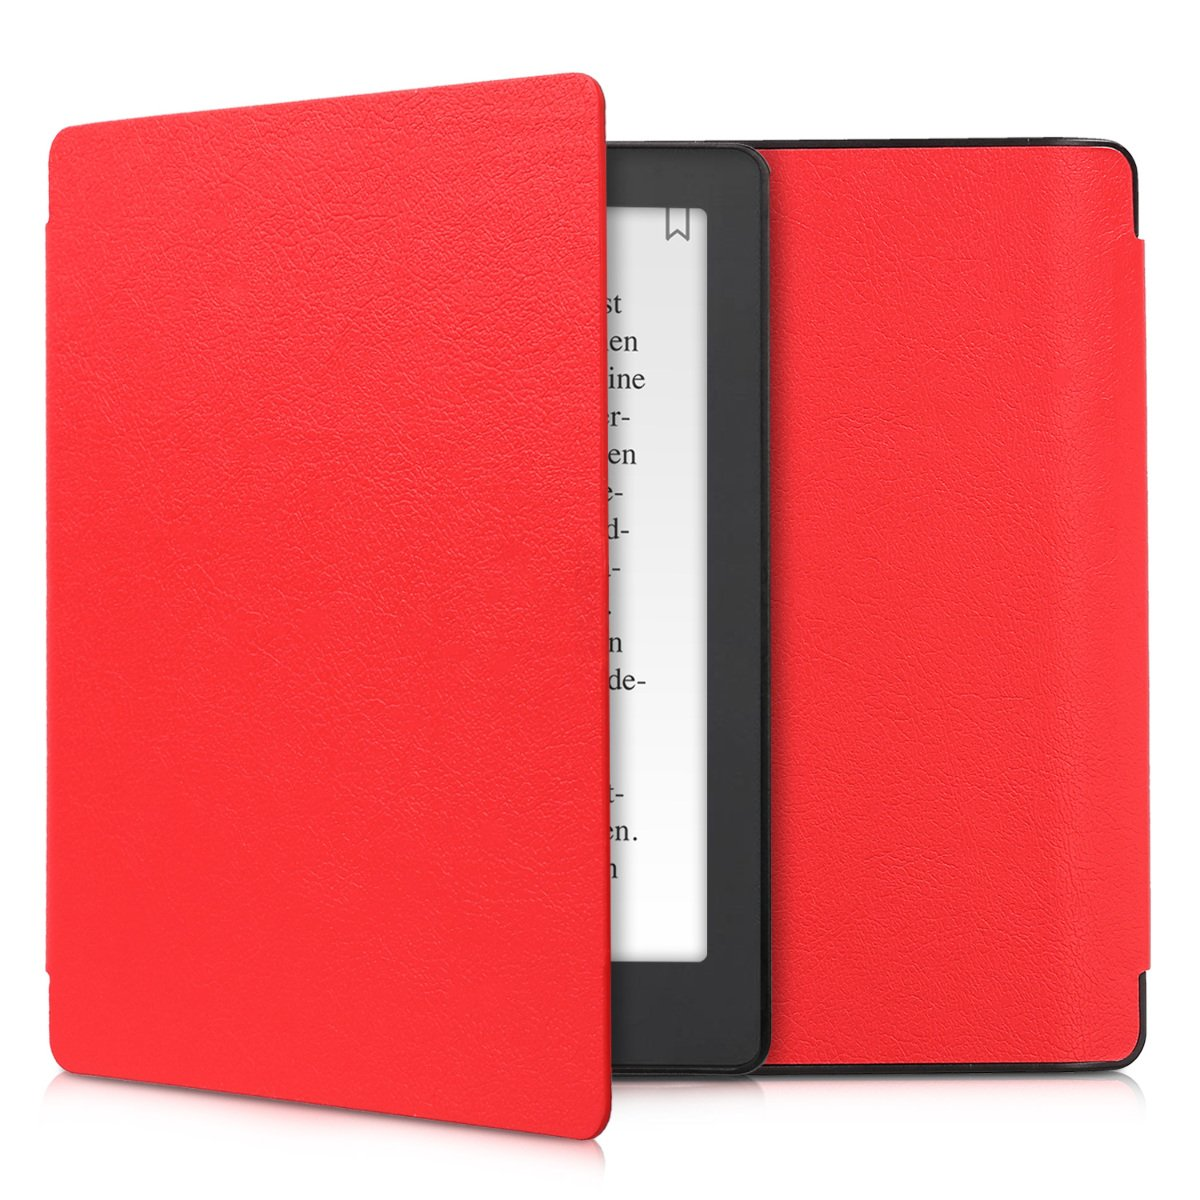 kwmobile Case for Kobo Aura H2O Edition 2 - Book Style PU Leather Protective e-Reader Cover Folio Case - red